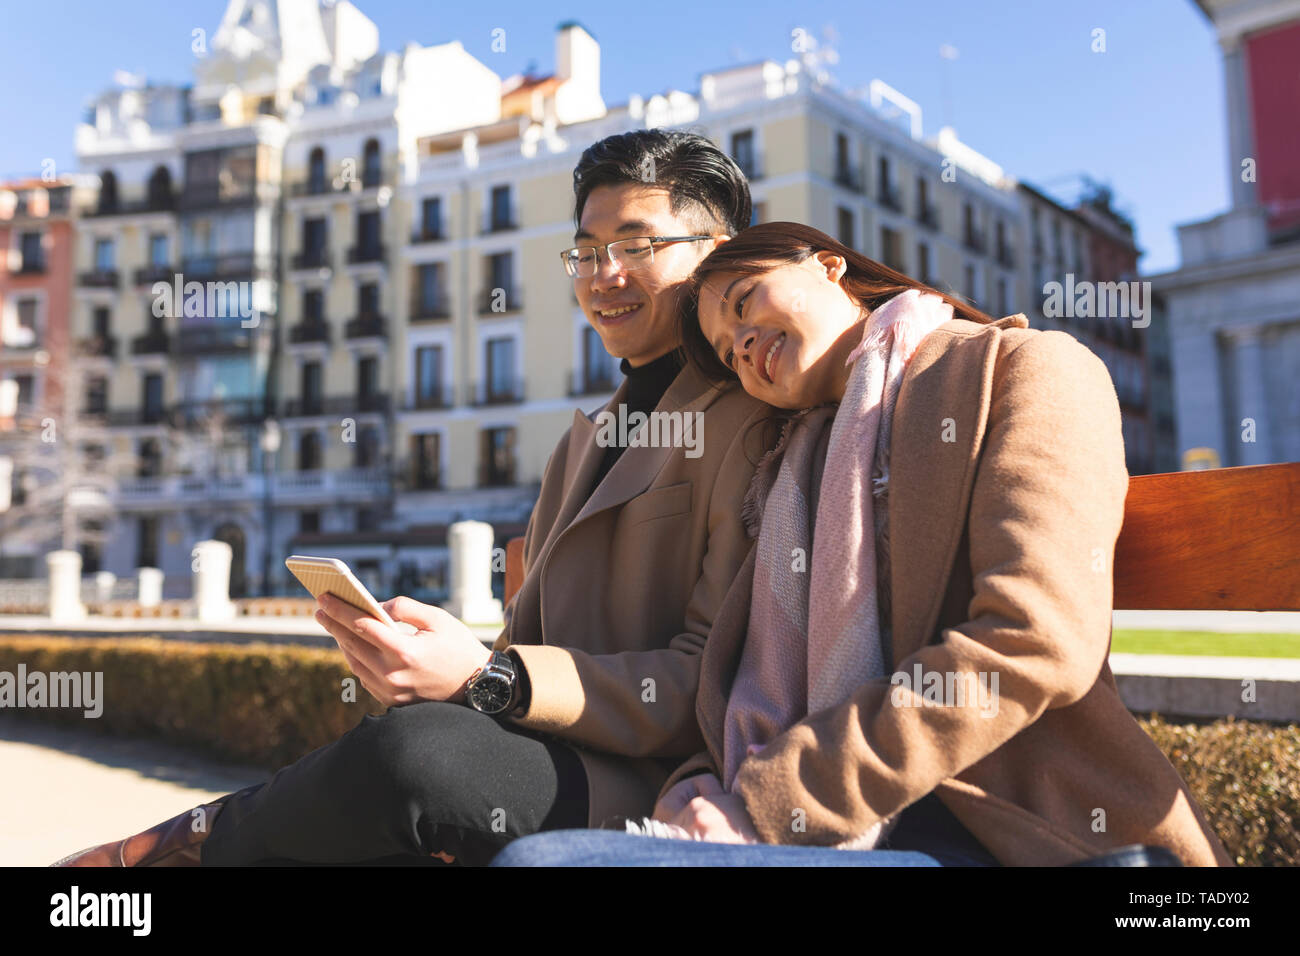 Spain, Madrid, young couple resting on a bench and using cell phone in the city - Stock Image